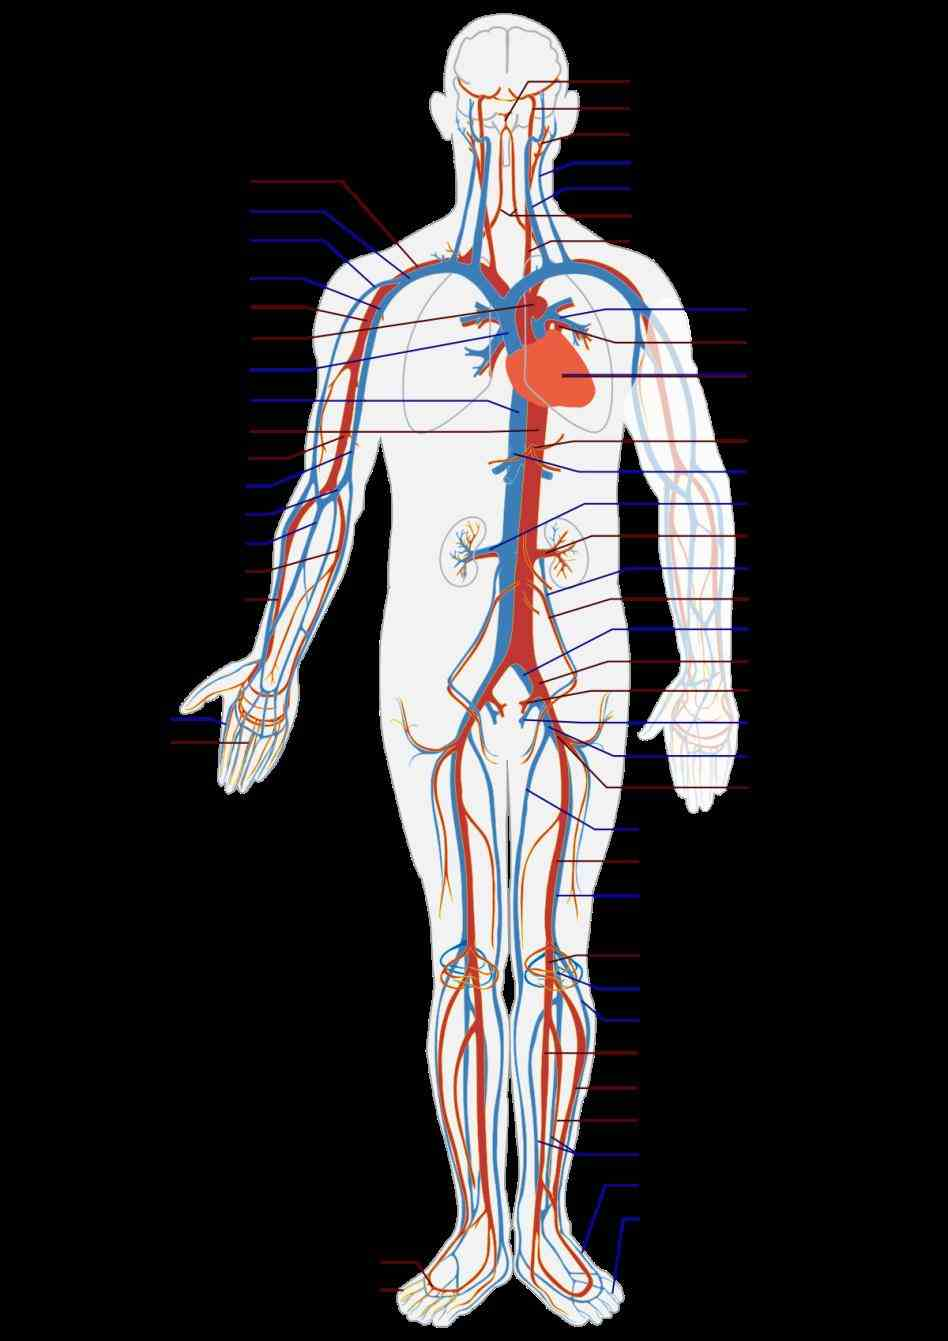 Arteries And Veins Anatomy Diagram | MedicineBTG.com